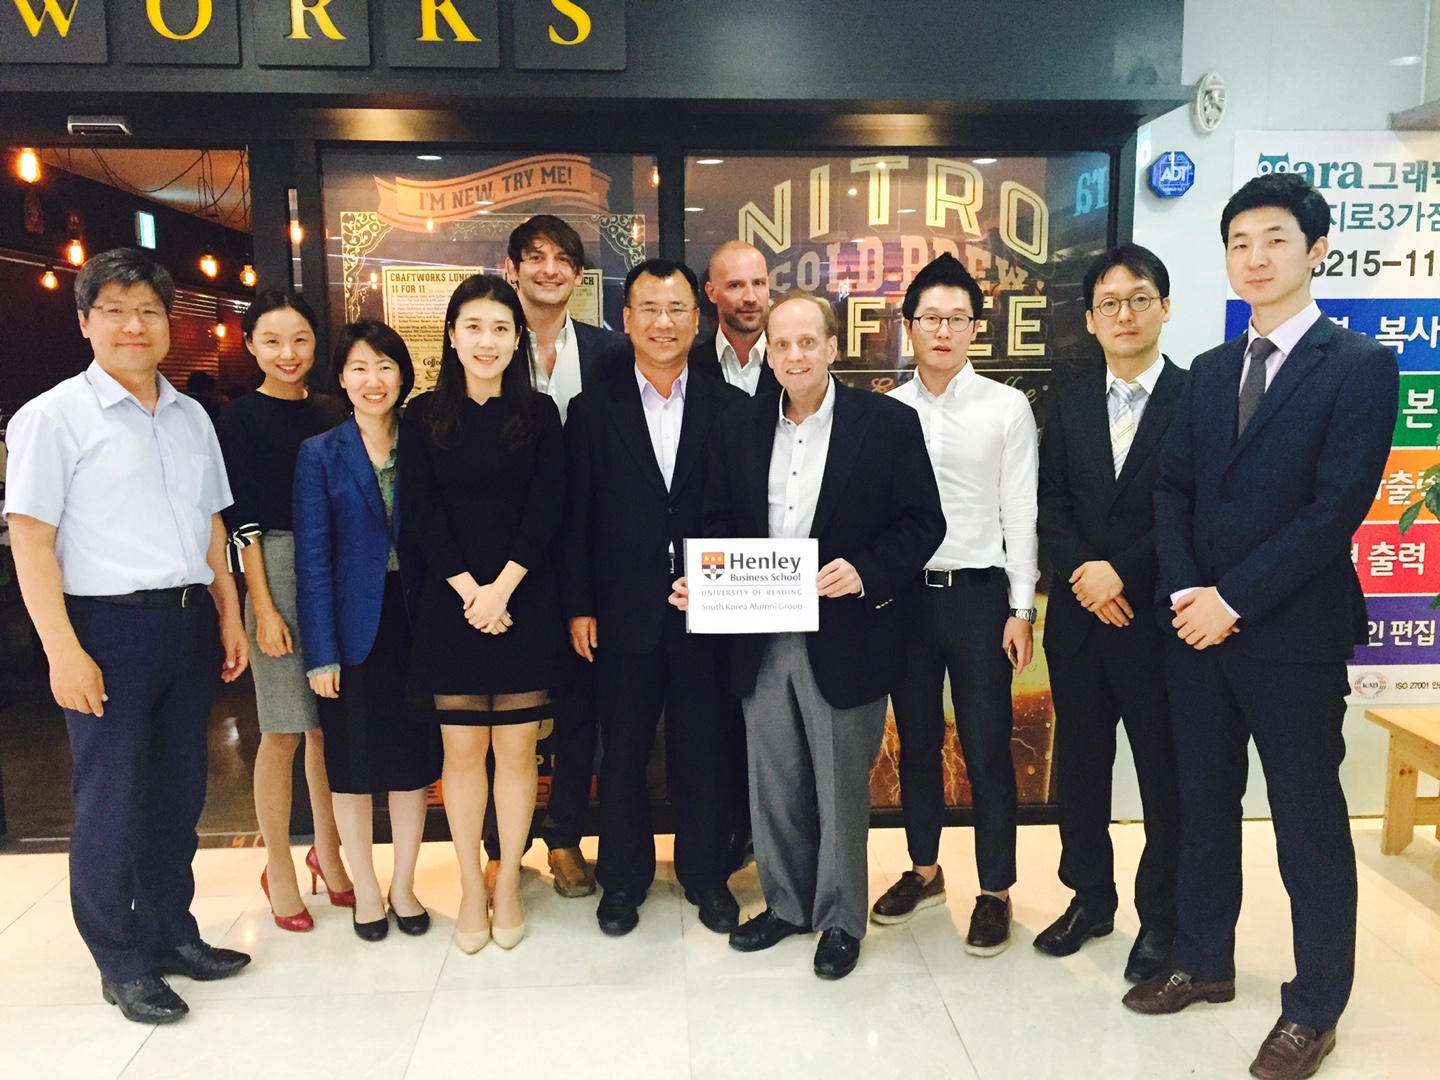 The Henley Business School Alumni Group South Korea has launched